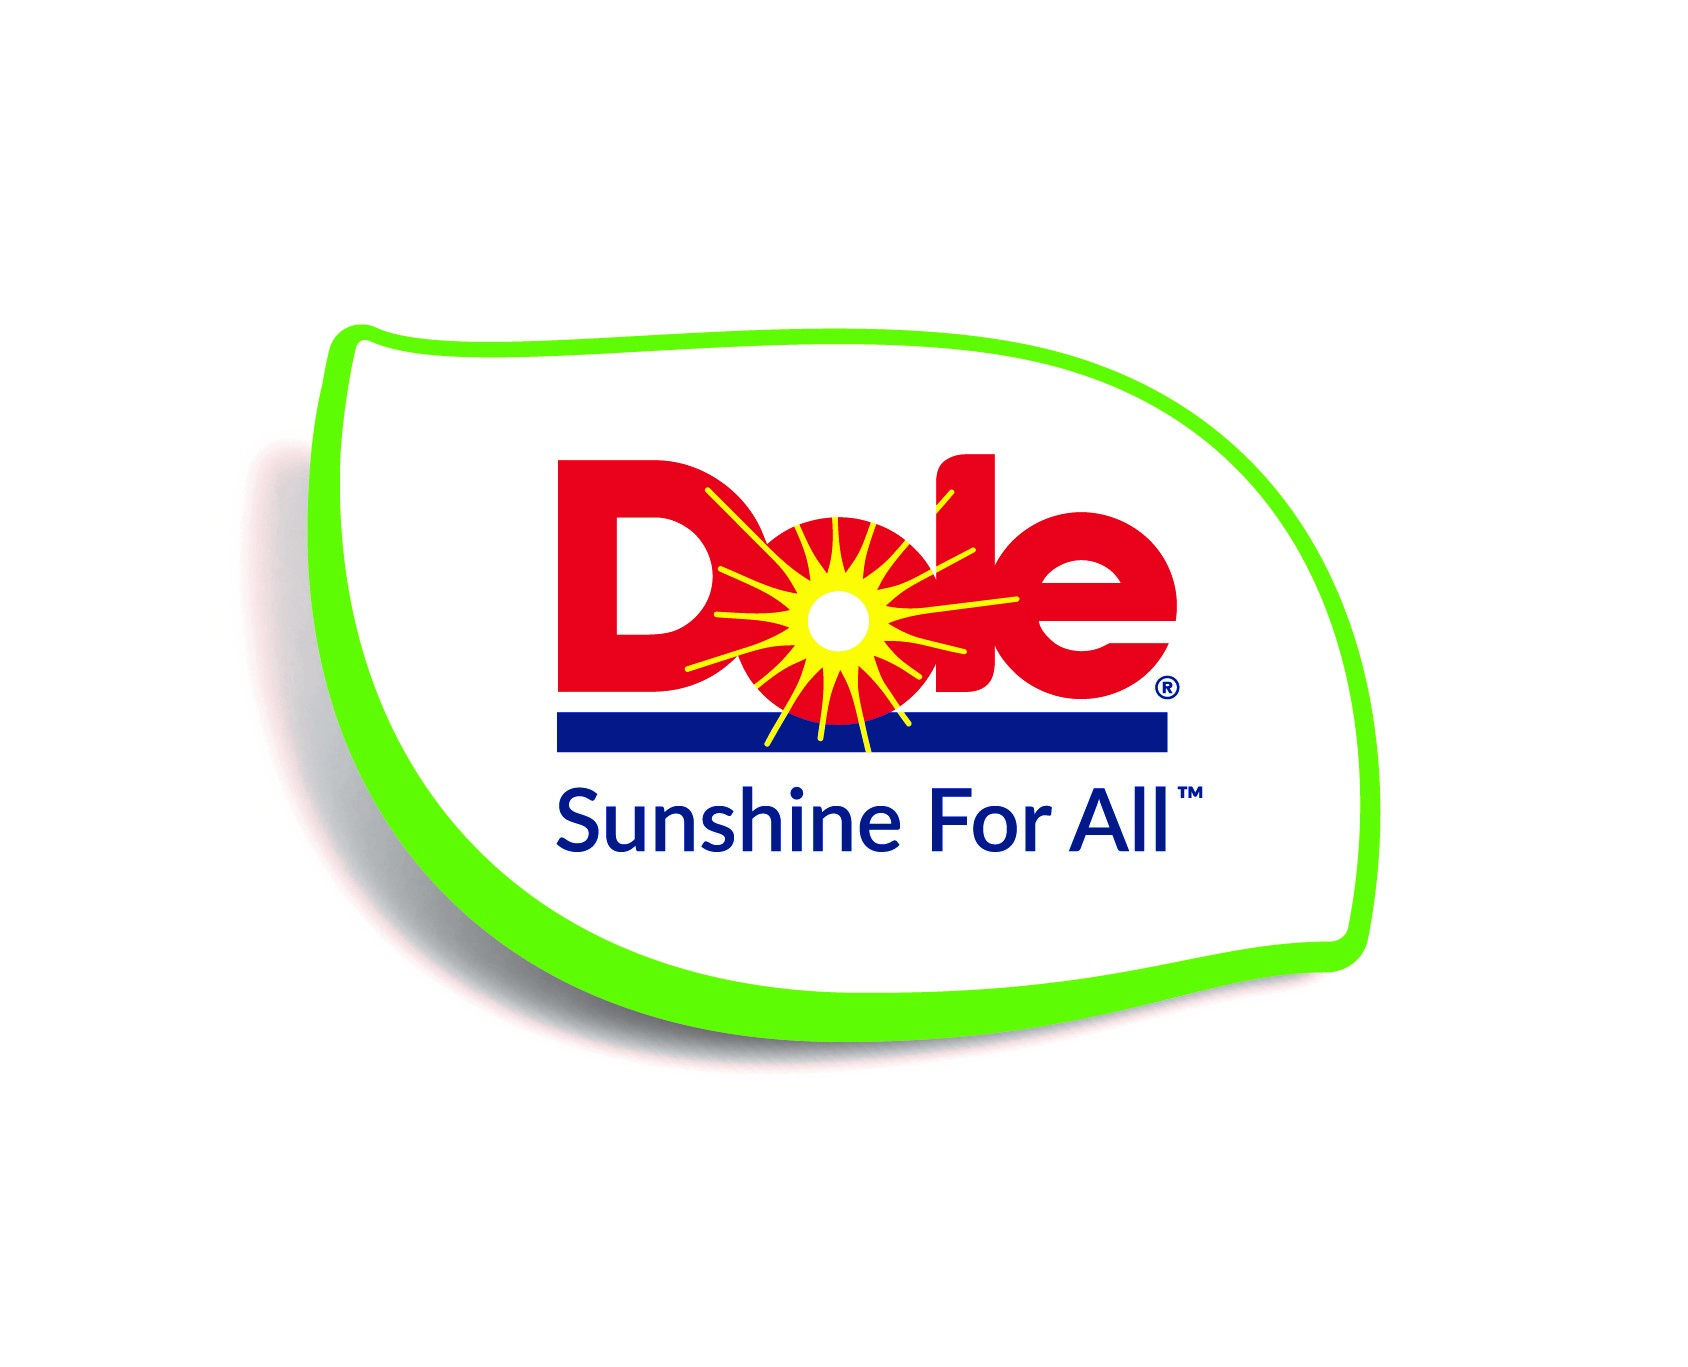 Dole Announces its Promises Bringing Interdependent Prosperity to People and the Planet